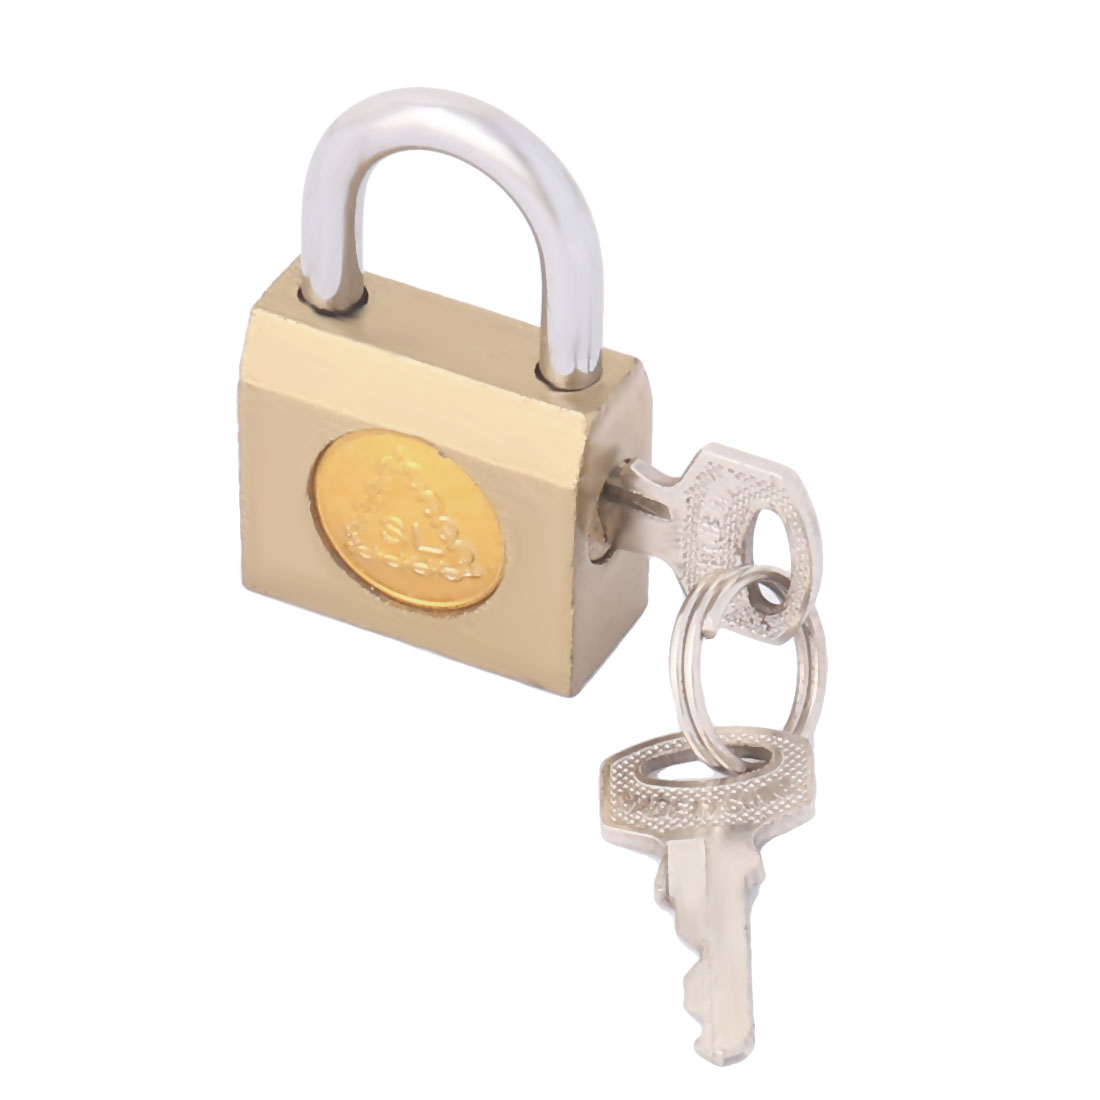 Home Office Door Drawer Luggage Metal Security Lock Shackle Padlock Brass Tone